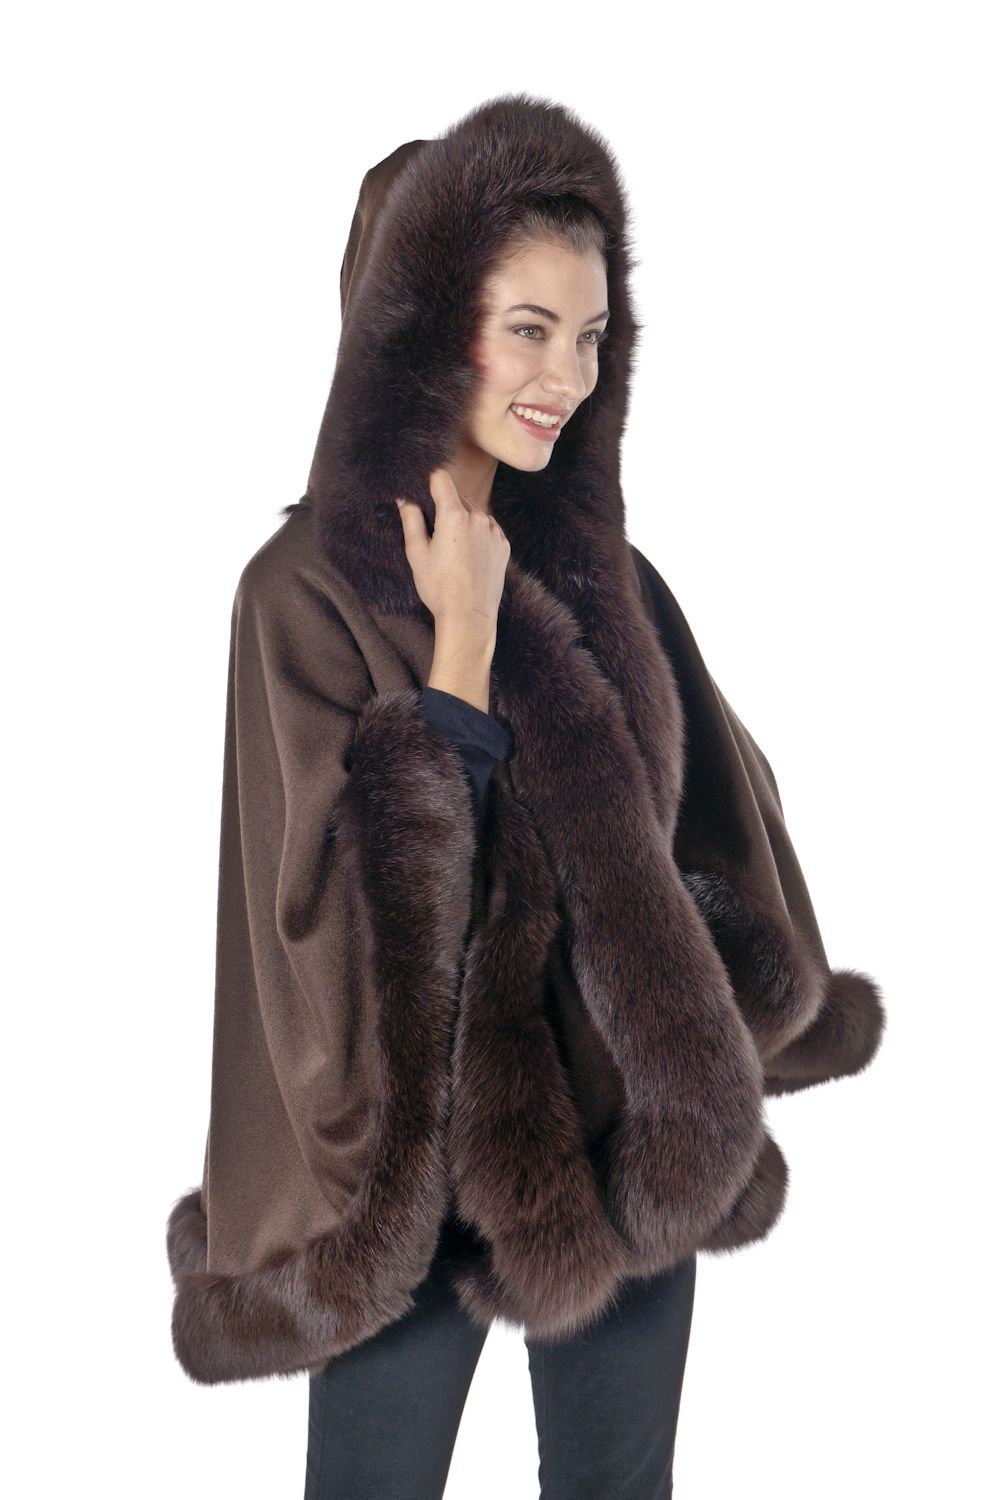 5b785922b8439 Plus size women's capes, wraps, ponchos,and shawls | ... Hooded Cape Fox  Trim-Plus | Plus Size Capes & Wraps | OneStopPlus